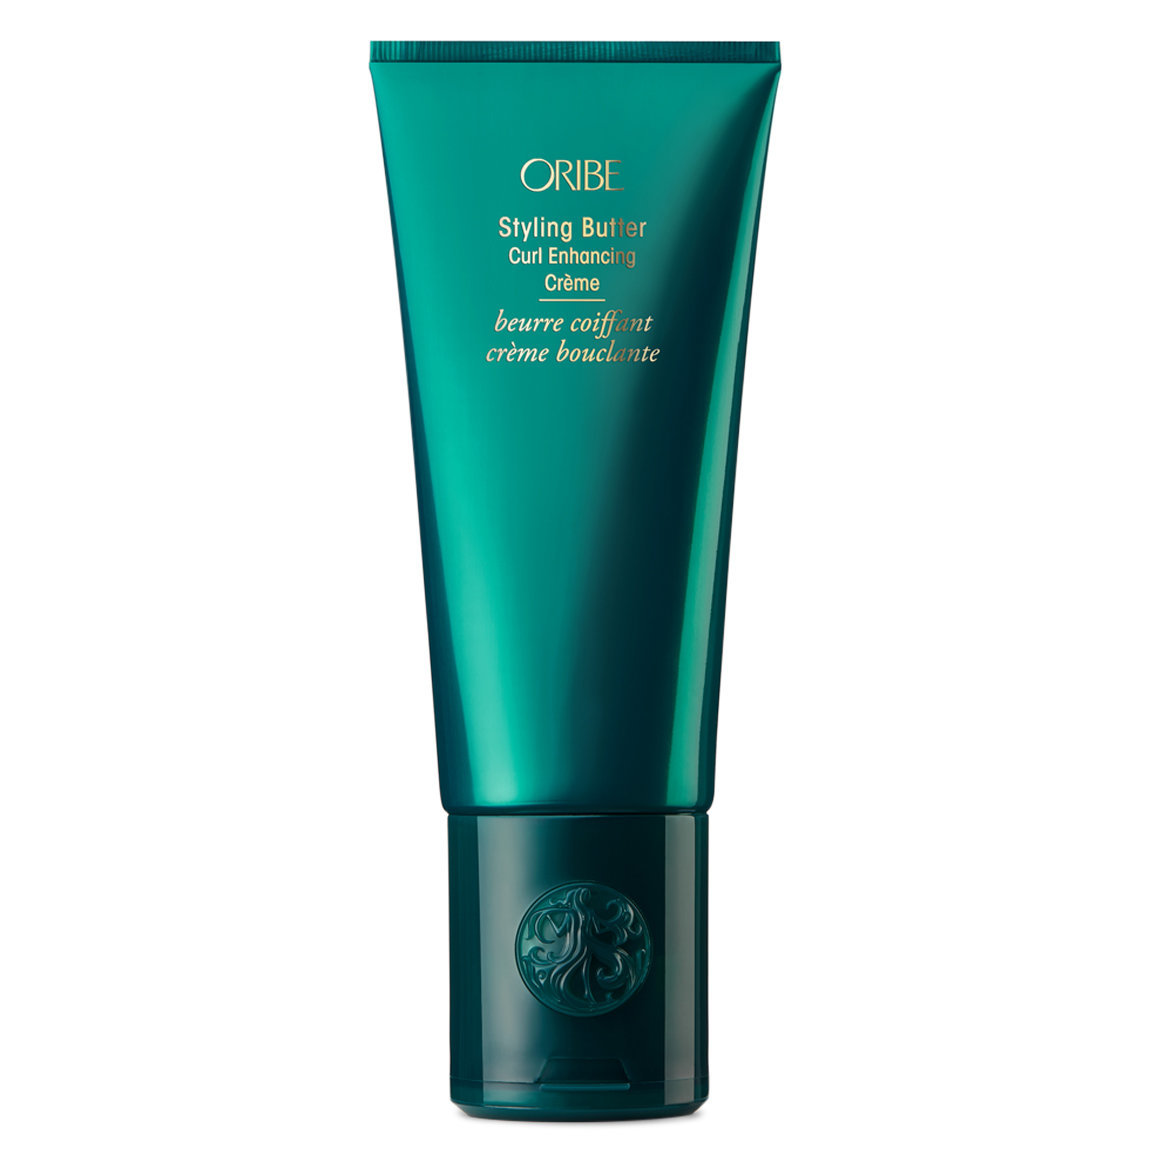 Oribe Styling Butter Curl Enhancing Crème alternative view 1 - product swatch.